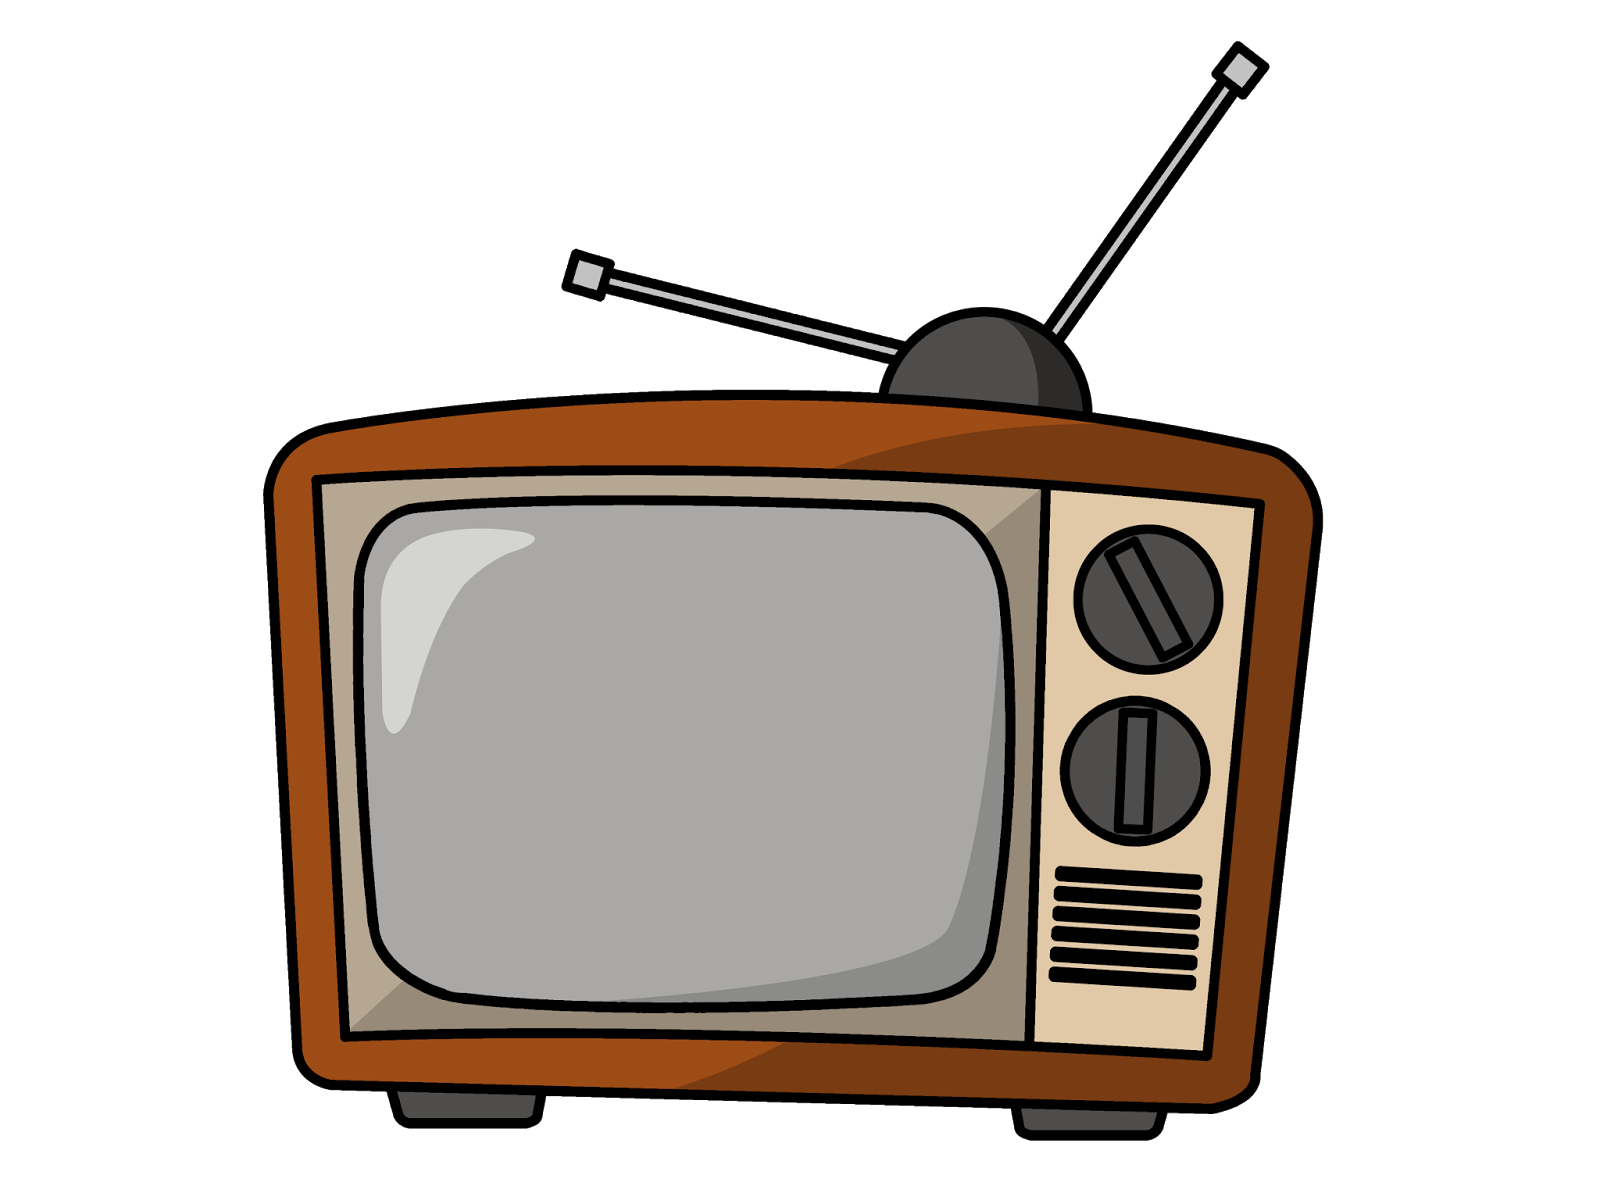 Television clip art png. Image tv my singing